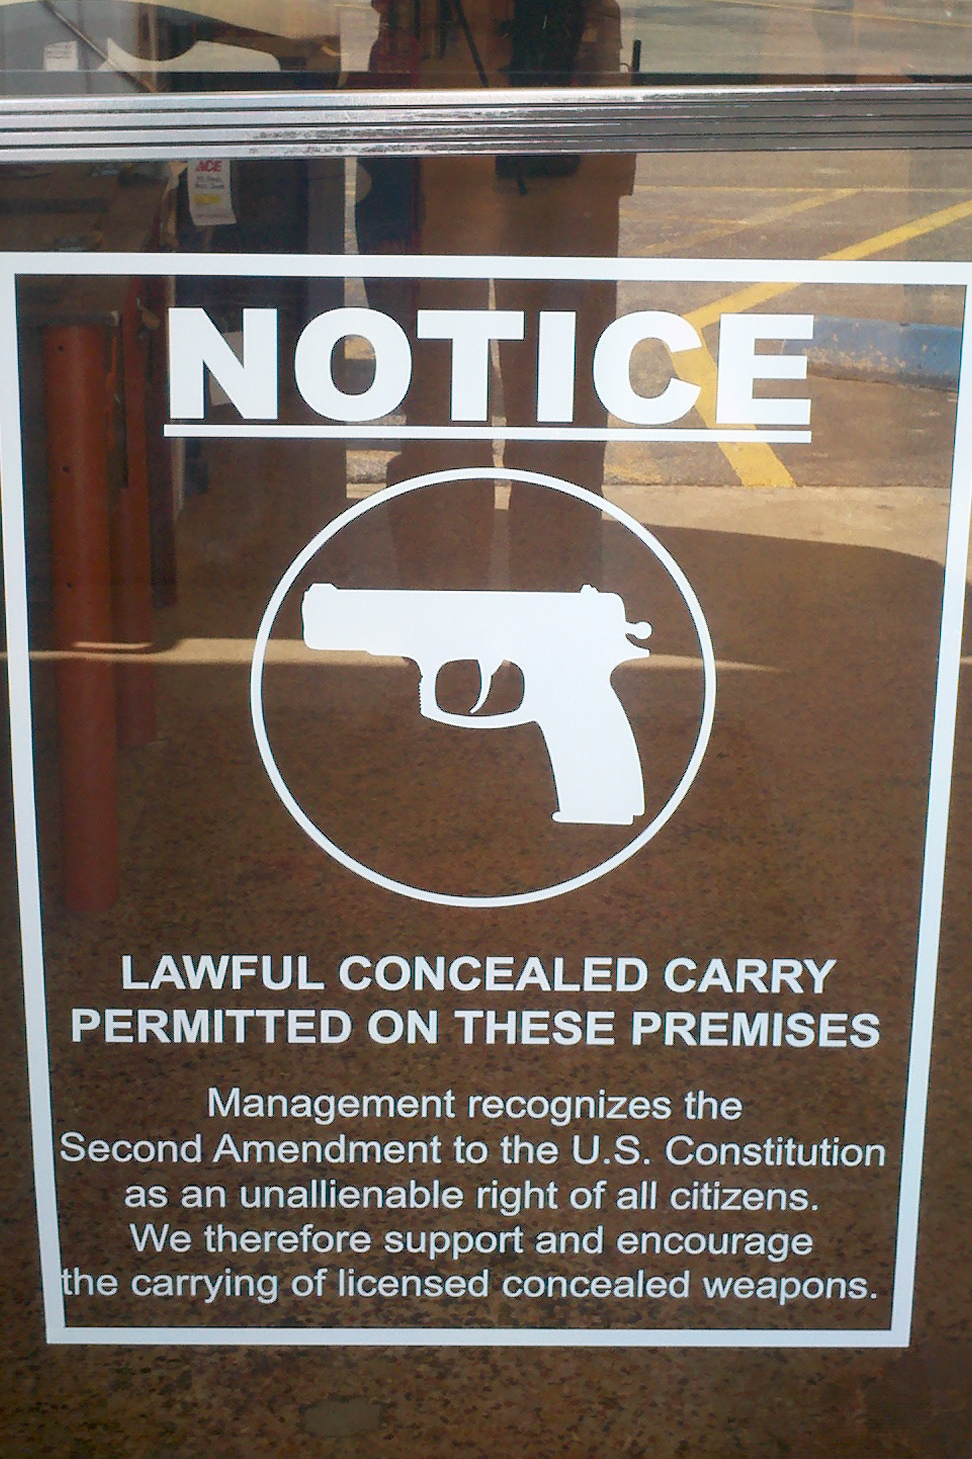 Flickr user wiz722 captured this sign indicated legal carrying of guns in Harris, Texas in 2011.